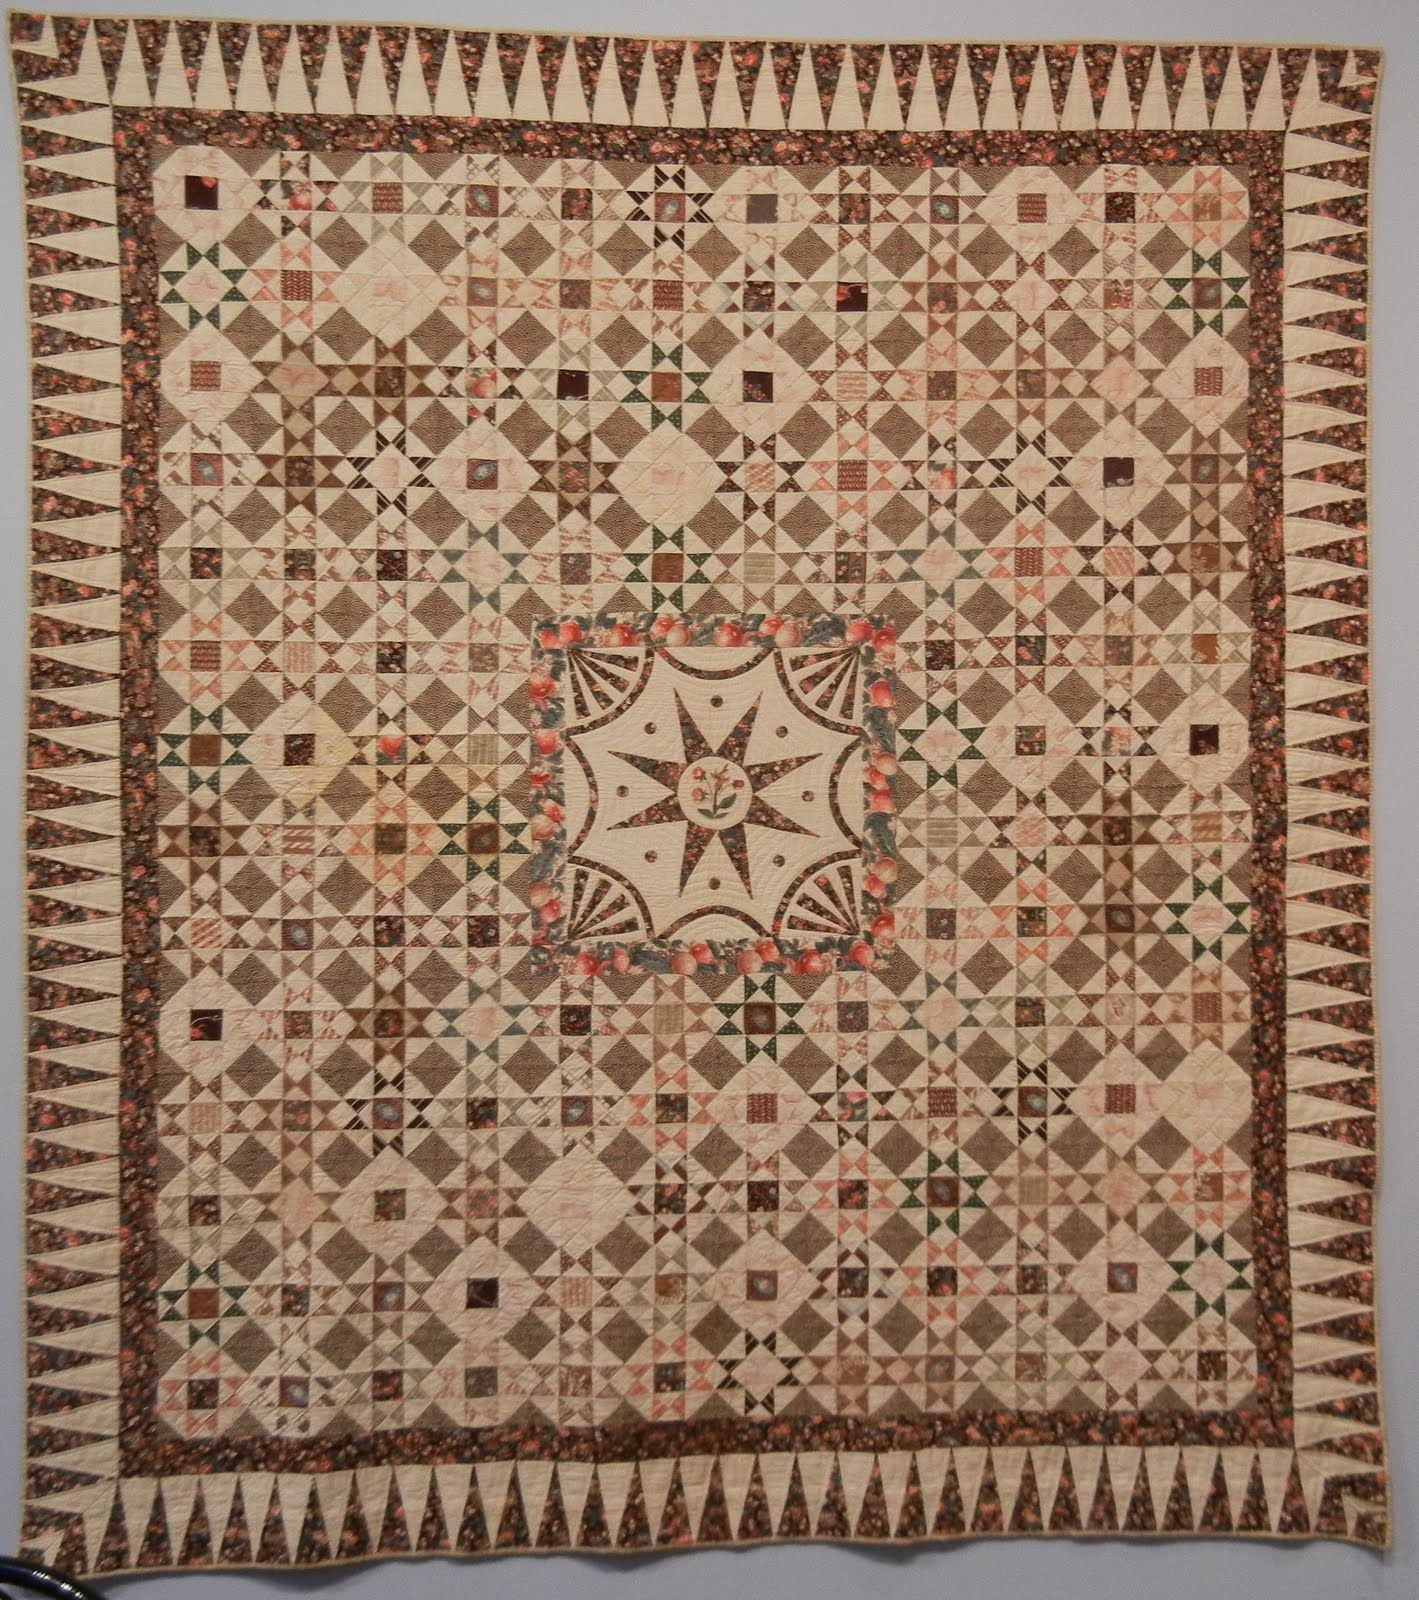 Ohio Stars Quilt; When the Red and White Quilt Exhibit was in NYC in March, this lovely quilt was on display at the American Folk Art Museum.